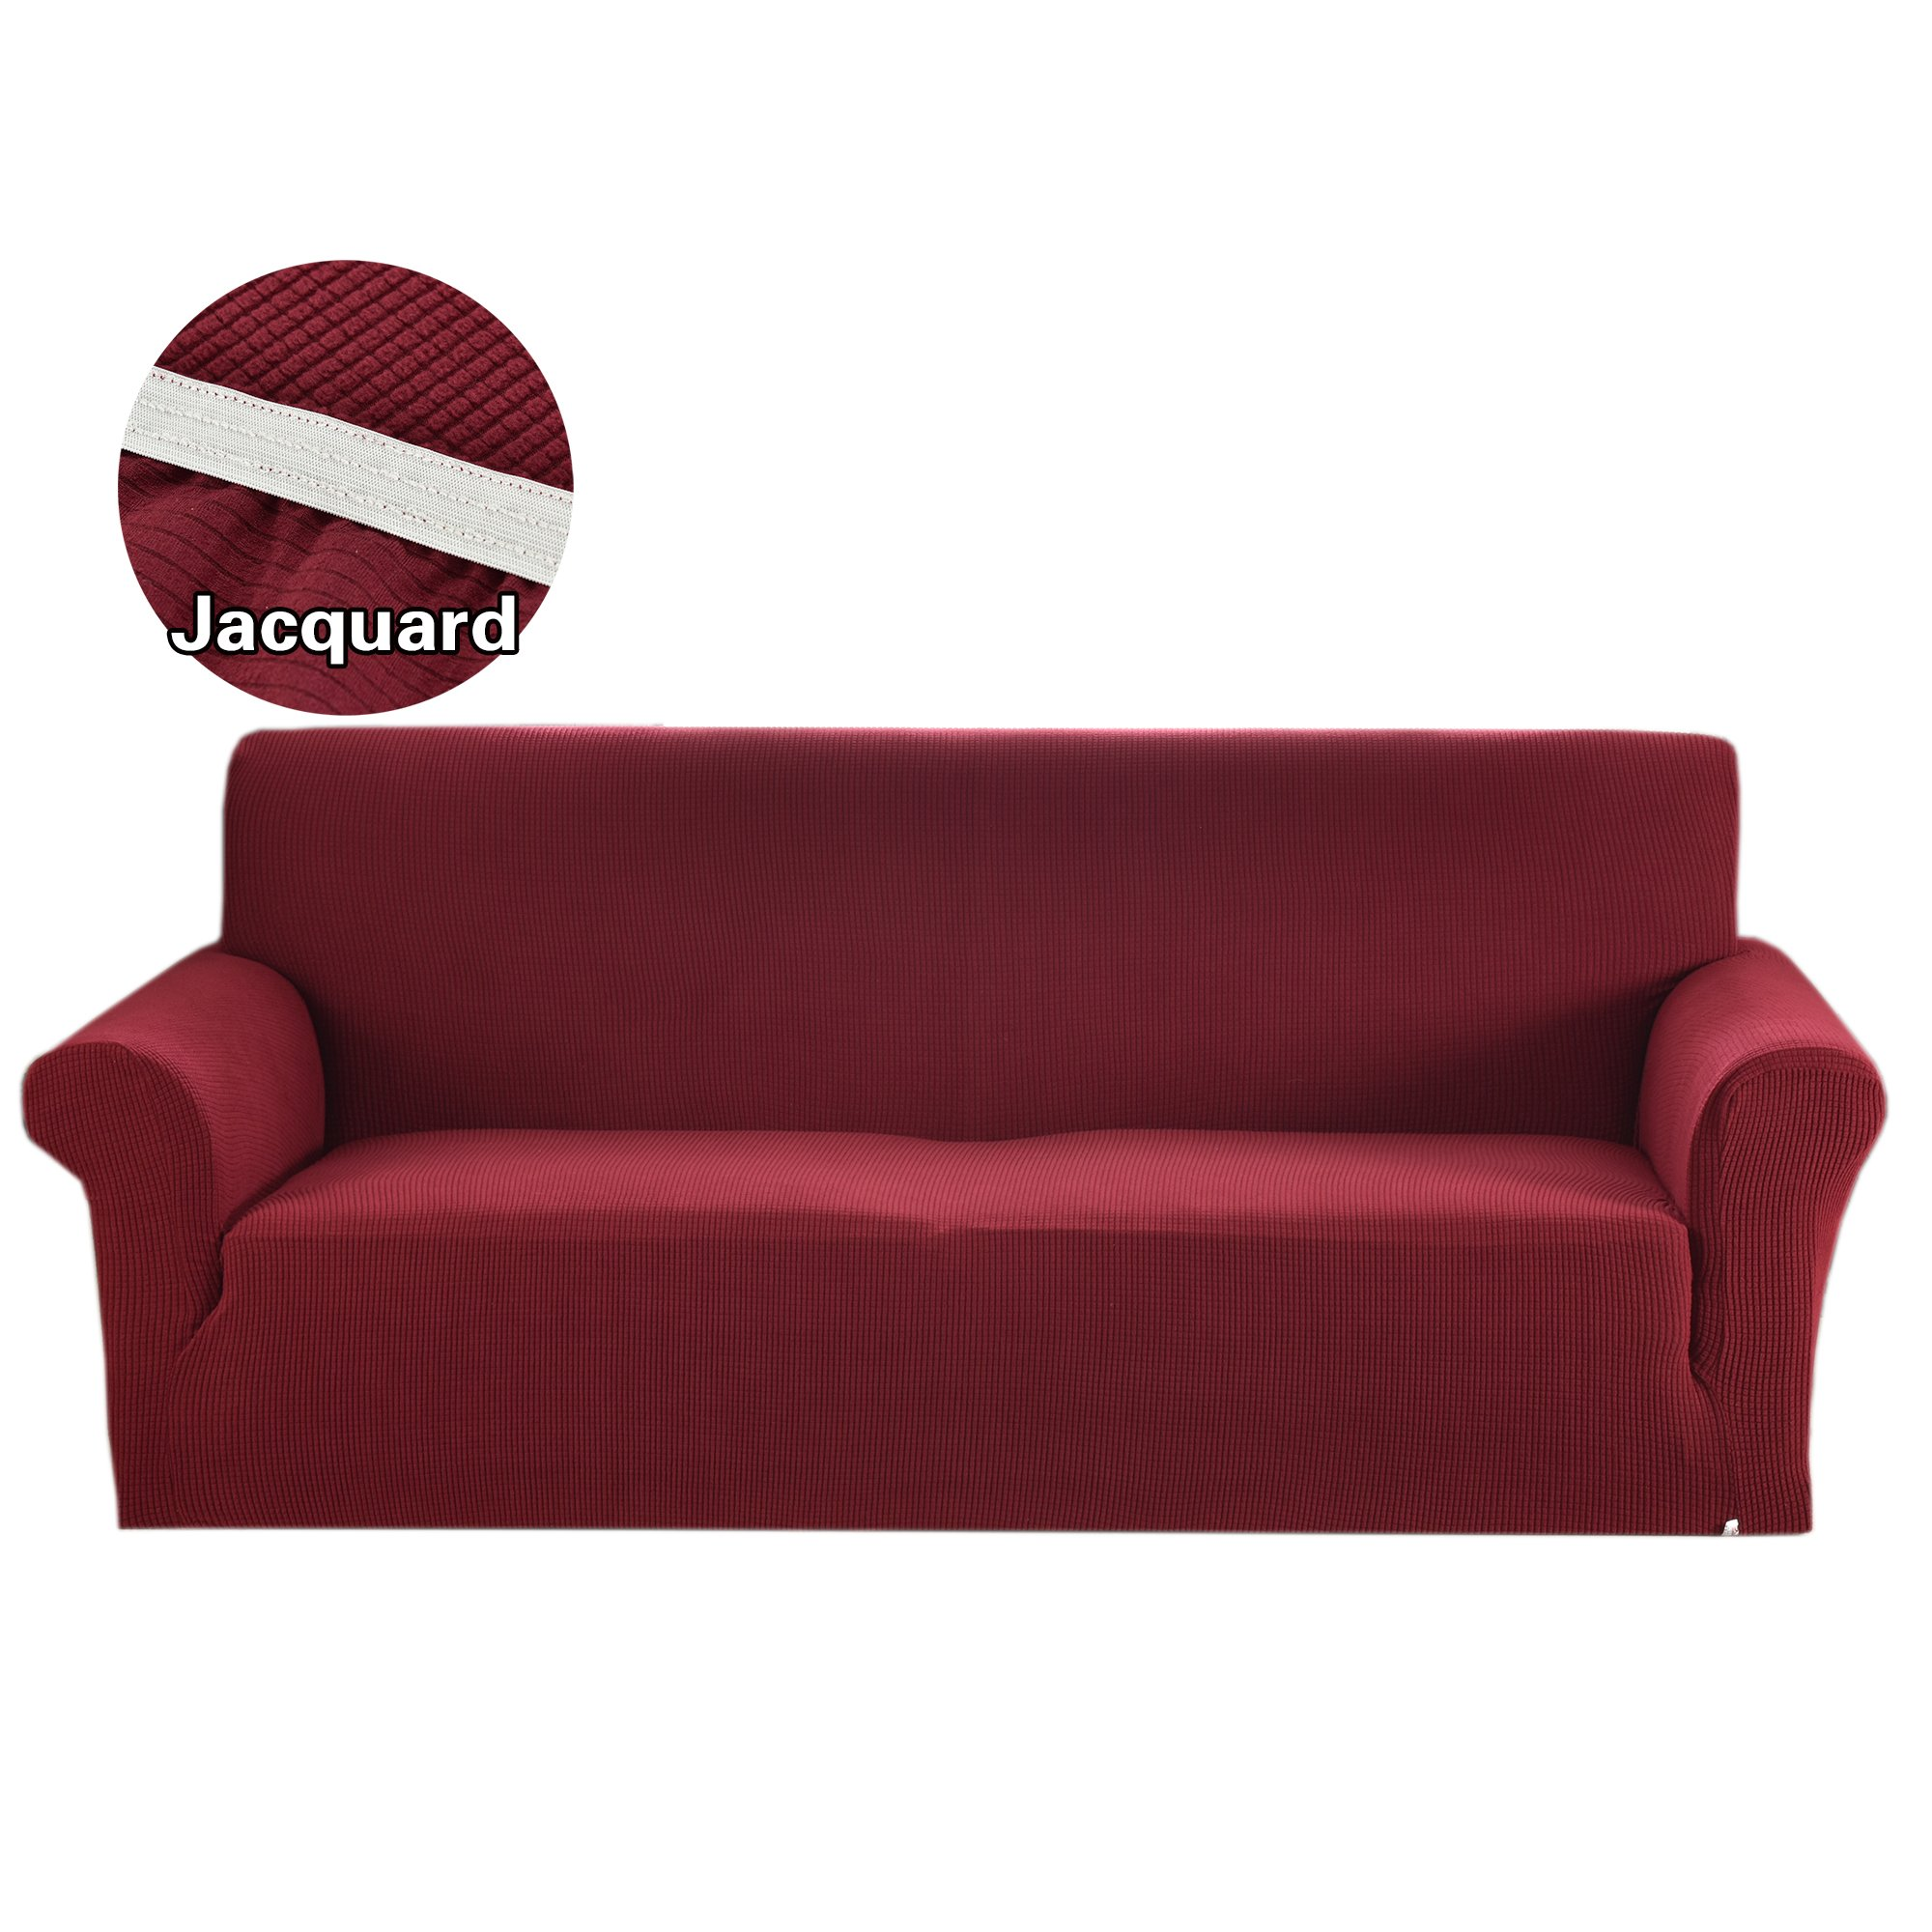 Argstar Jacquard Love Seat Slipcover Soft Elastic Wine Red